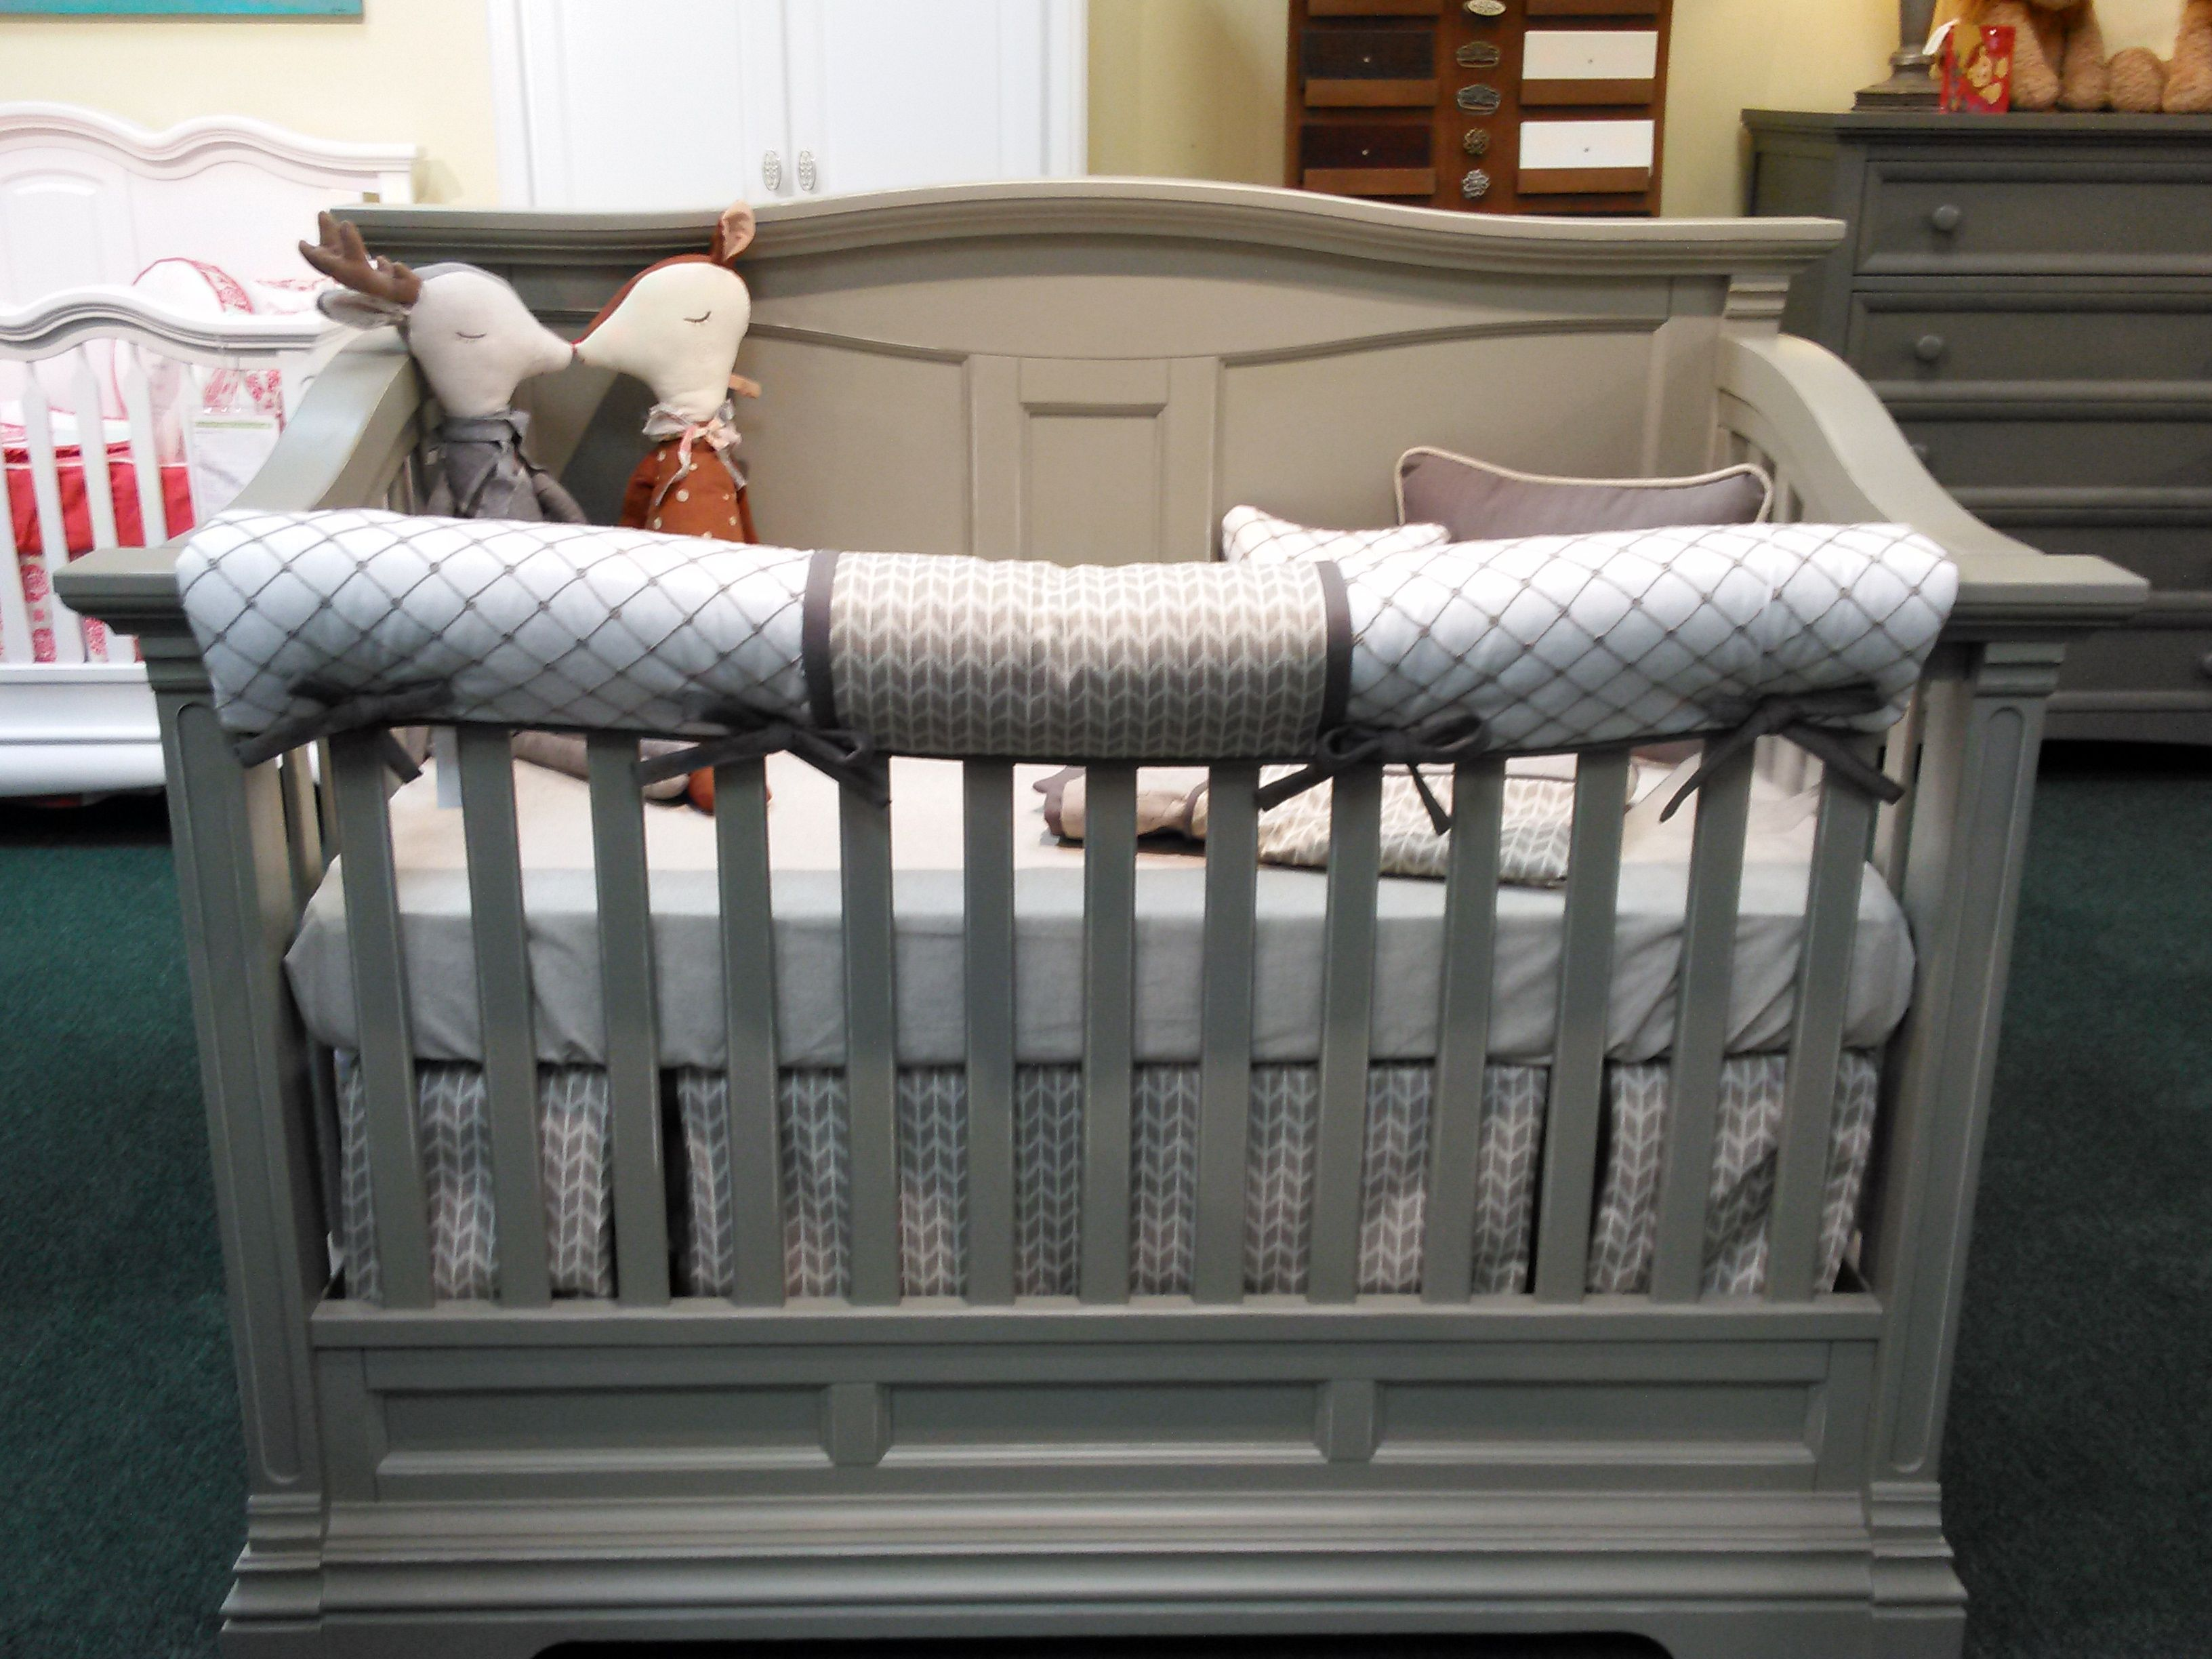 Captivating Nottingham Crib Bedding Set With Tan Arrows On A Romina Furniture Crib  Display At Baby Furniture